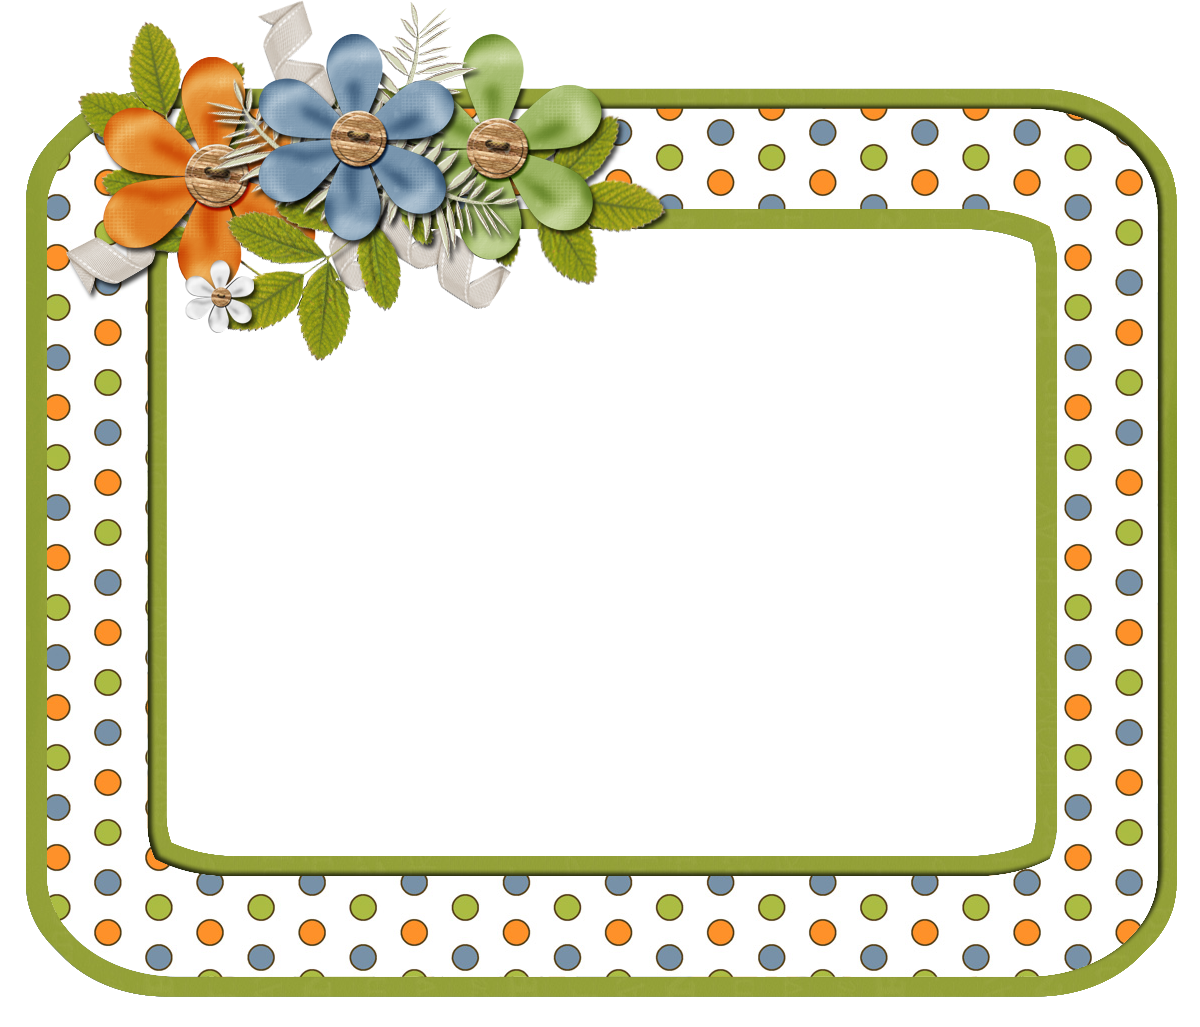 Free Digital Scrapbook Elements